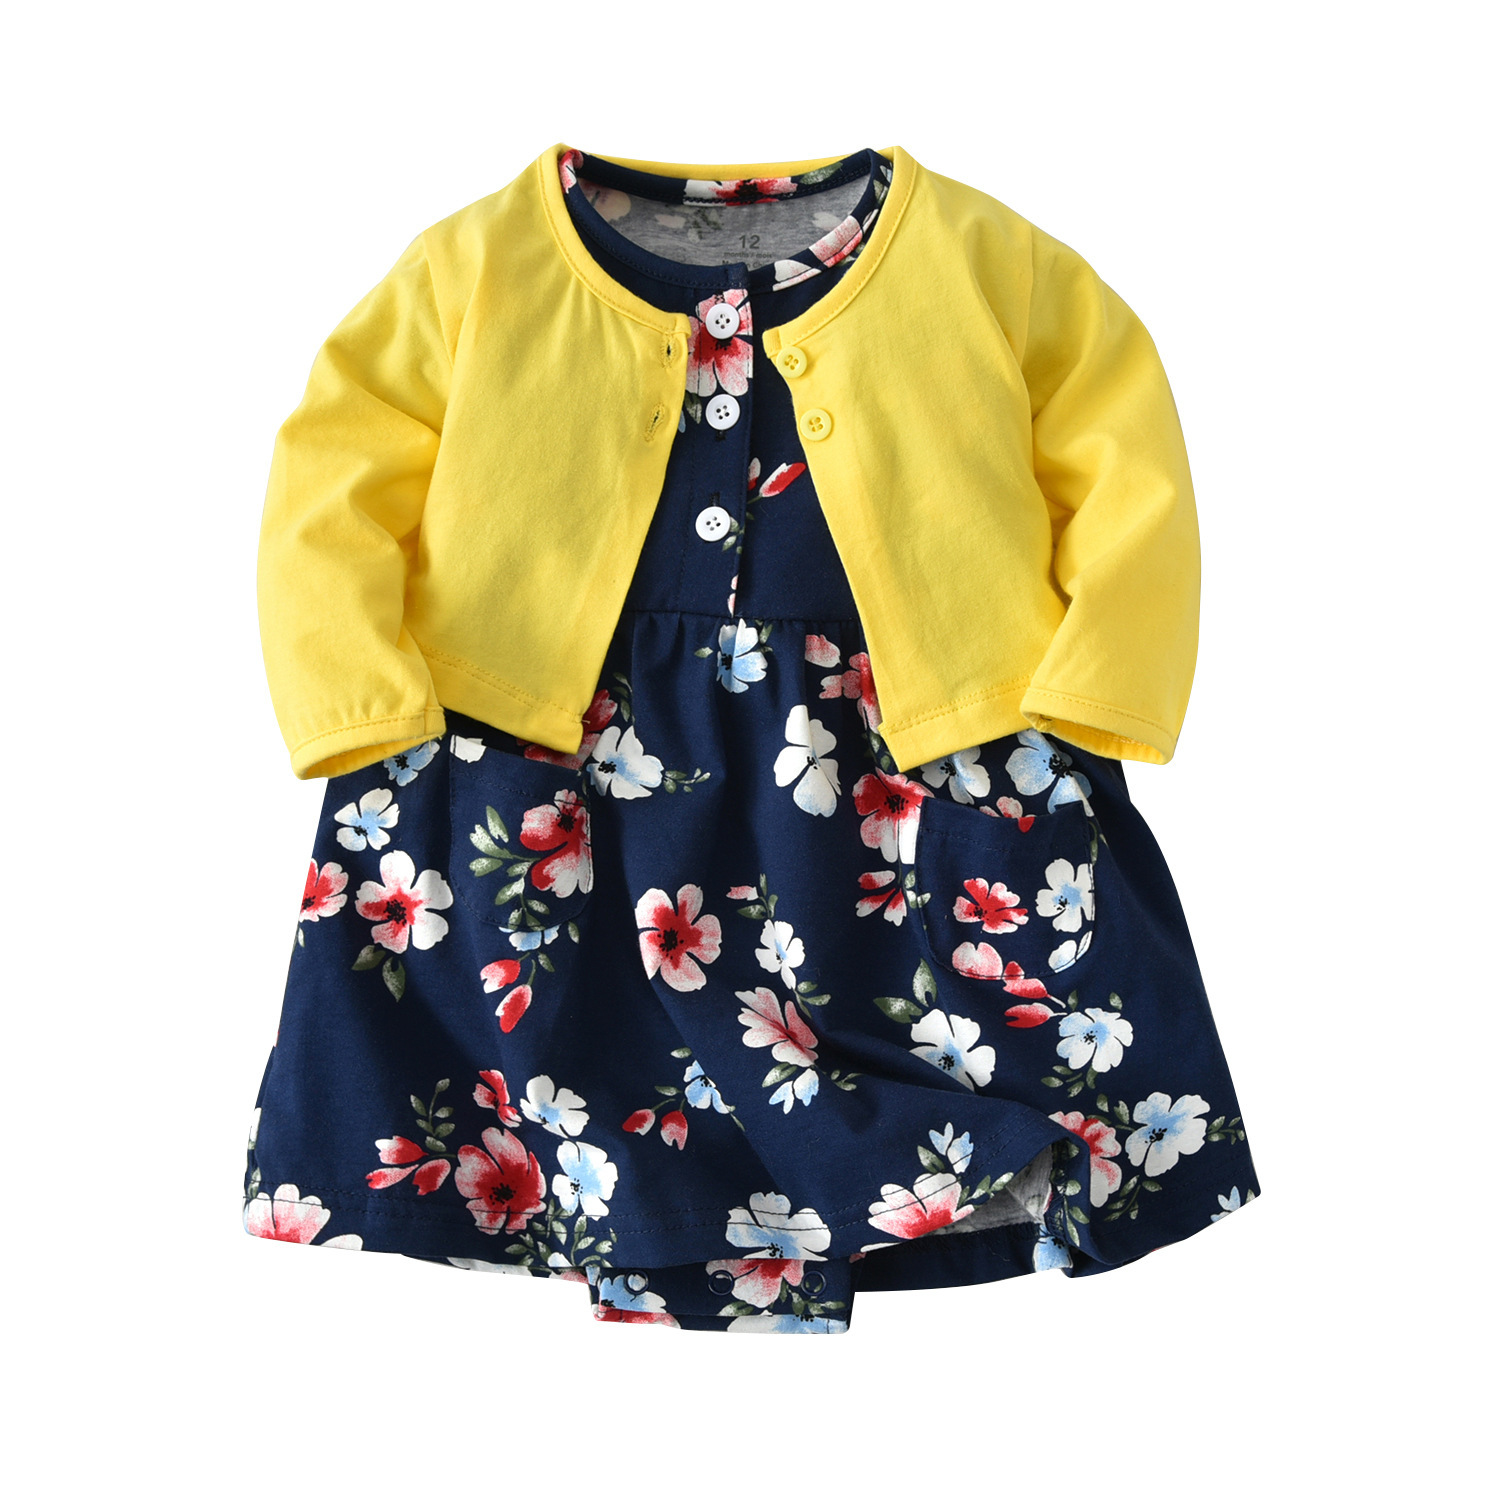 newborn girls clothes my first christmas baby girl outfit fashion 2019 summer floral o neck thanksgiving tops love clothing in Clothing Sets from Mother Kids